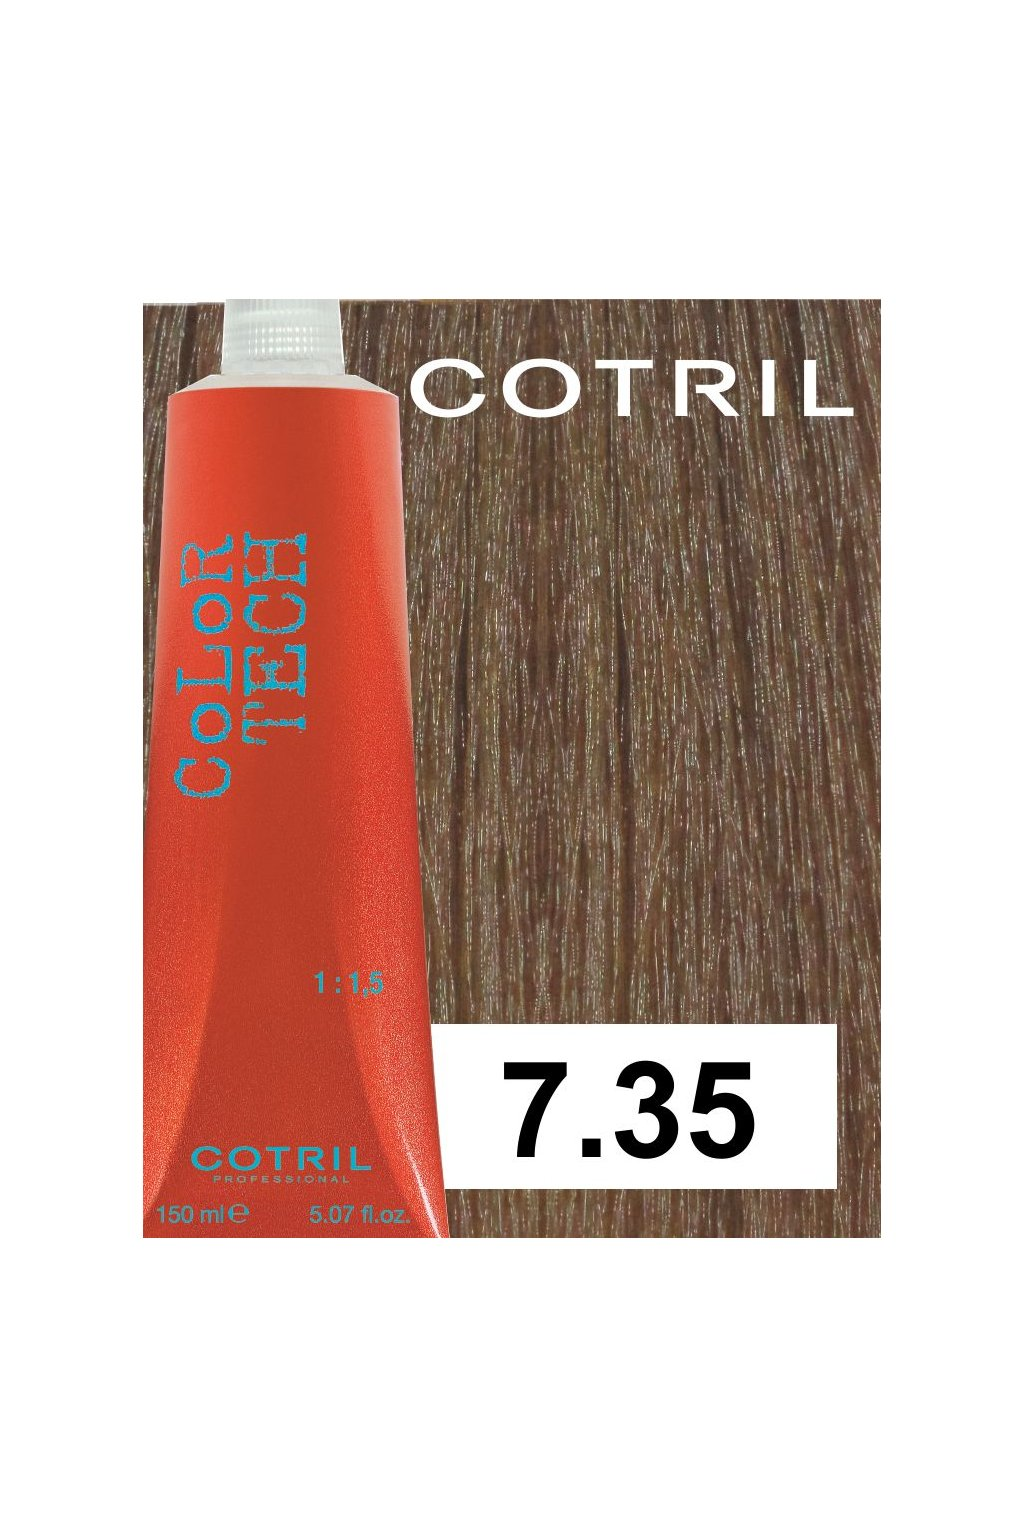 7 35 ct cotril